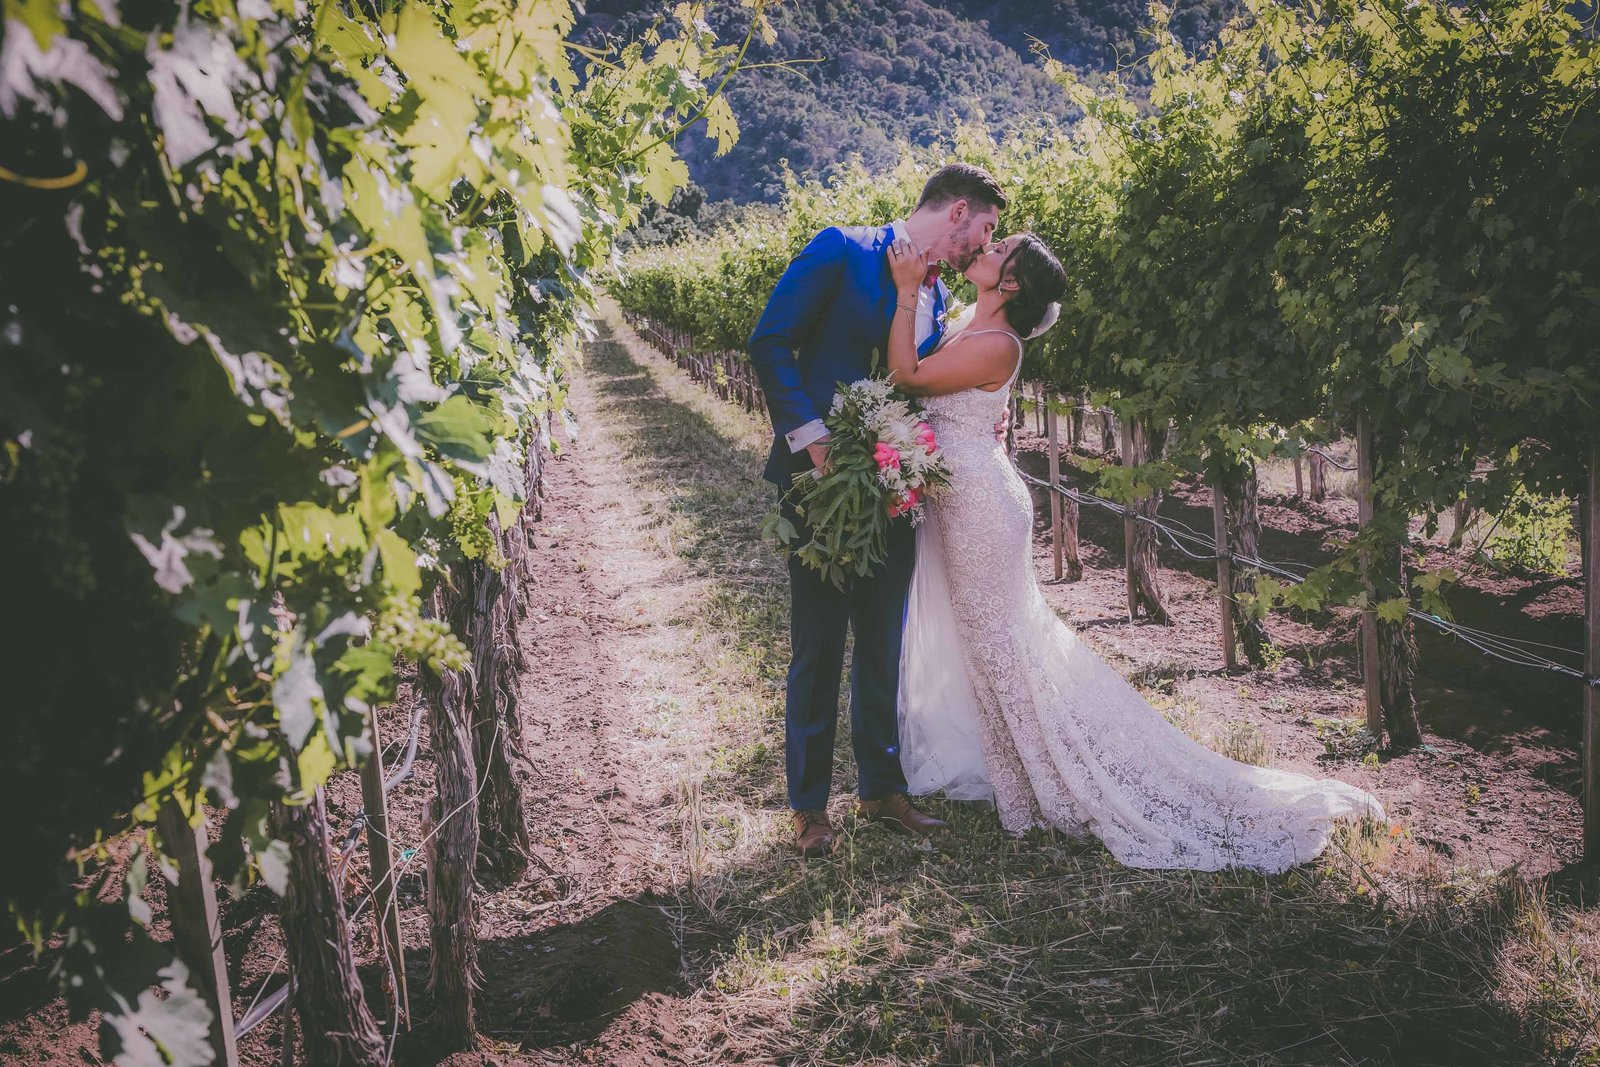 A couple stop to kiss in a vineyard located in Carmel.